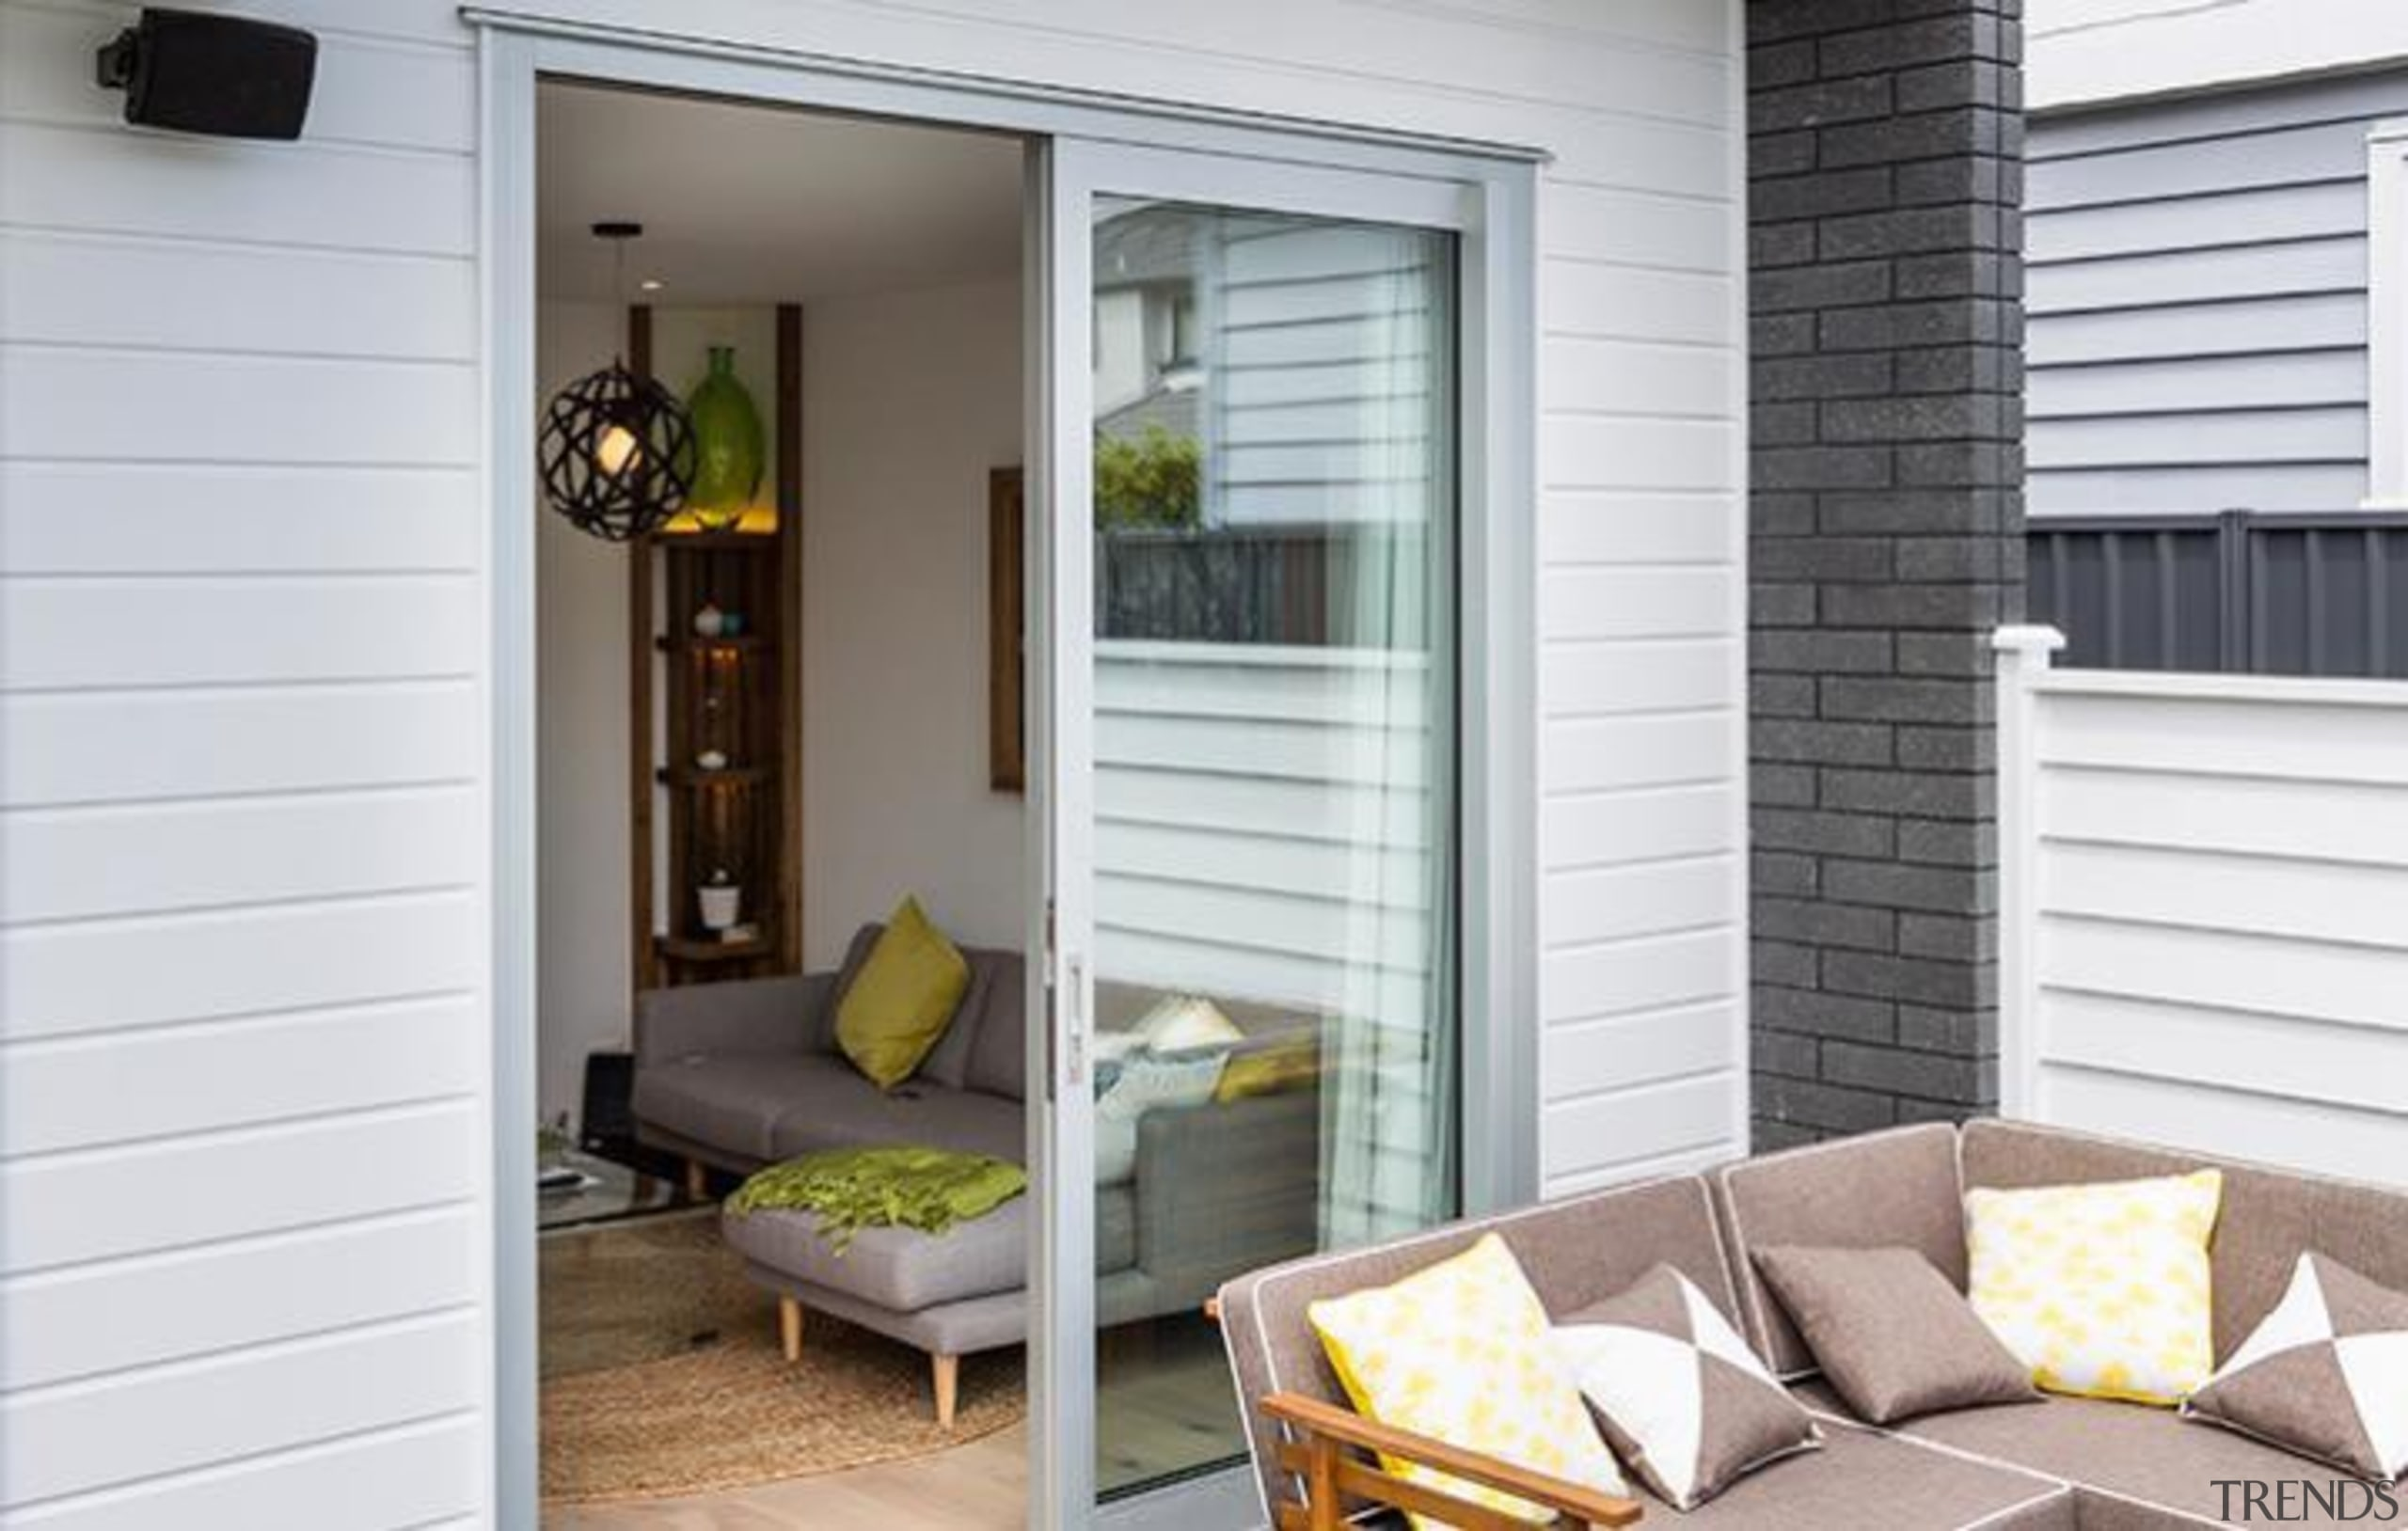 Simpler. Faster. Proven Weathertight. - A-lign Concealed Fix door, home, house, interior design, porch, shade, siding, window, window covering, window treatment, gray, white